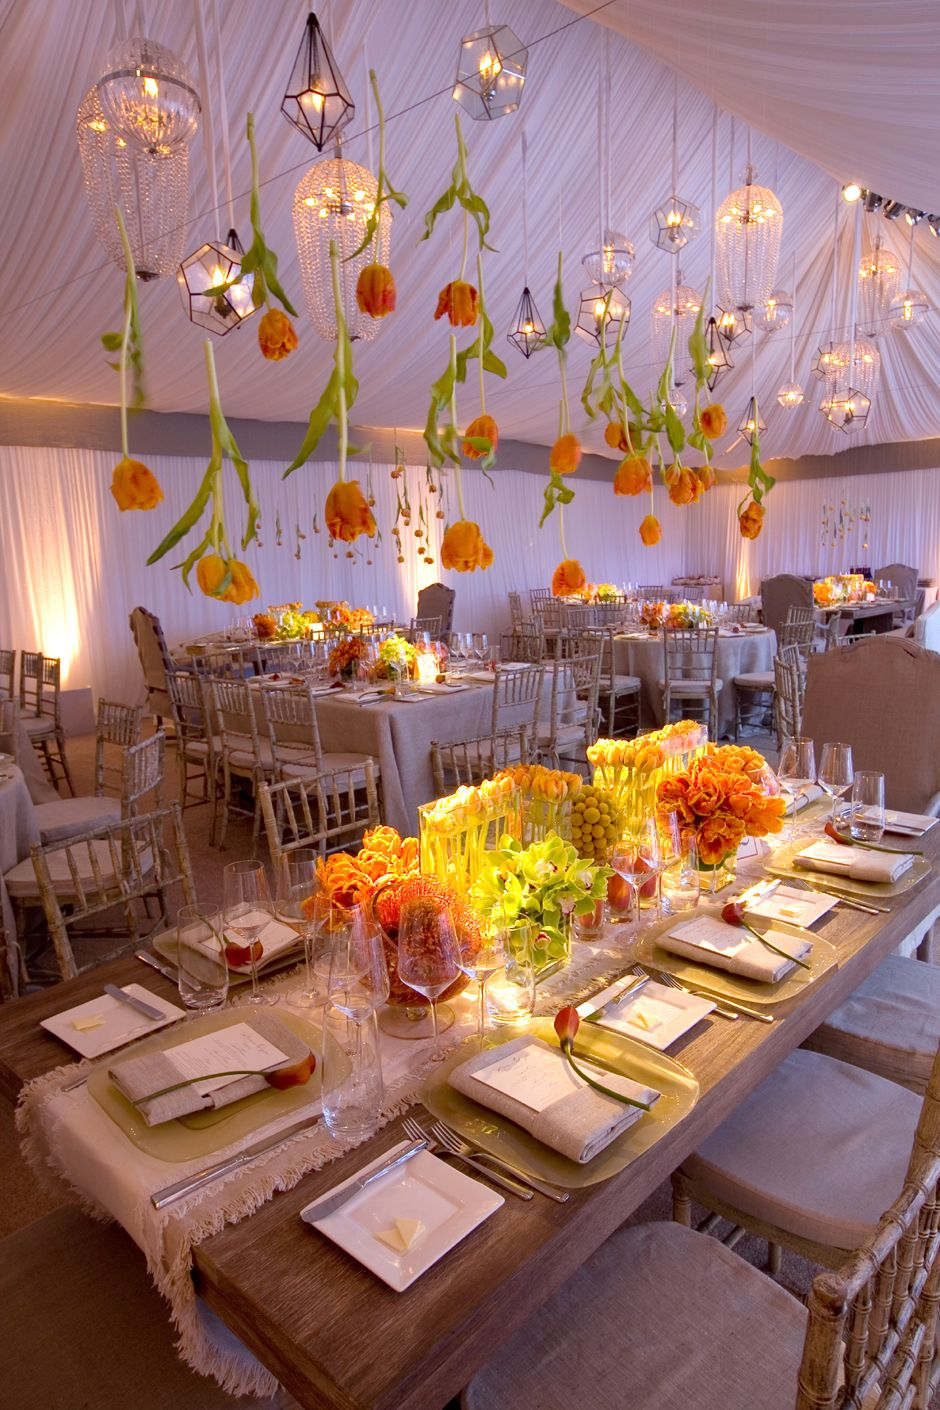 Our Work | Mindy Weiss | Hanging wedding decorations, Wedding decorations,  Hanging flowers